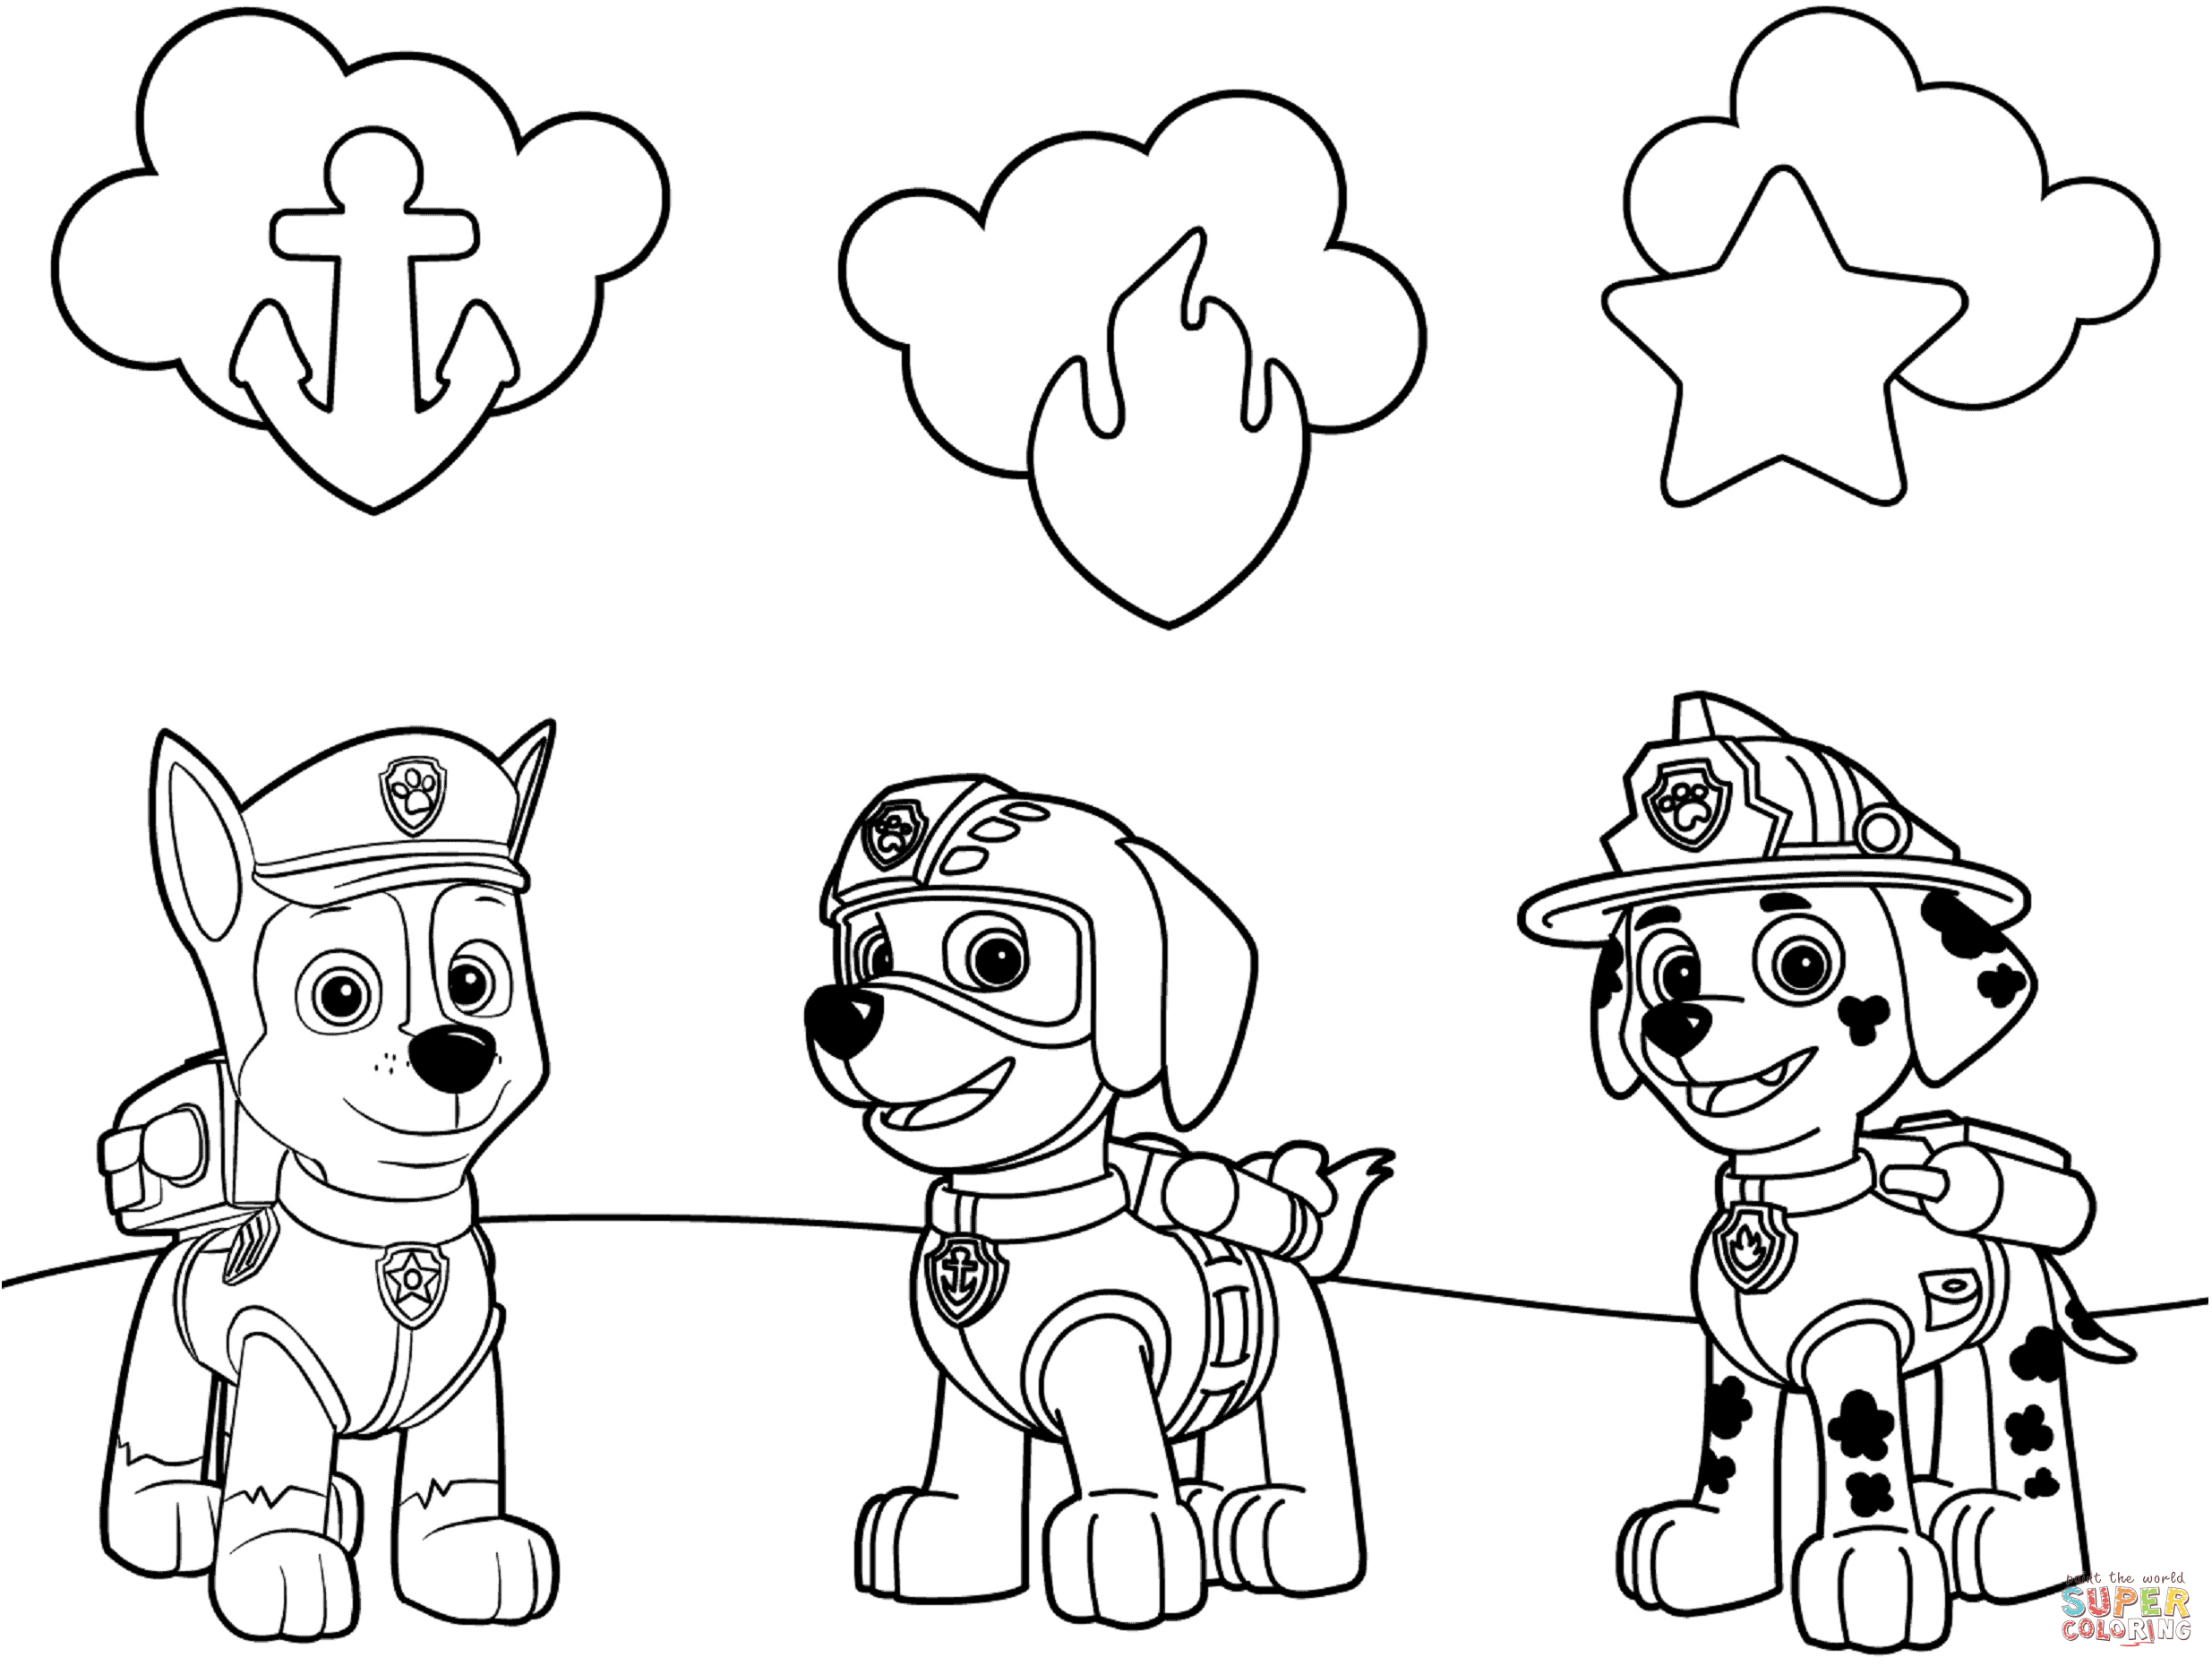 Paw Patrol Badges coloring page  Free Printable Coloring Pages